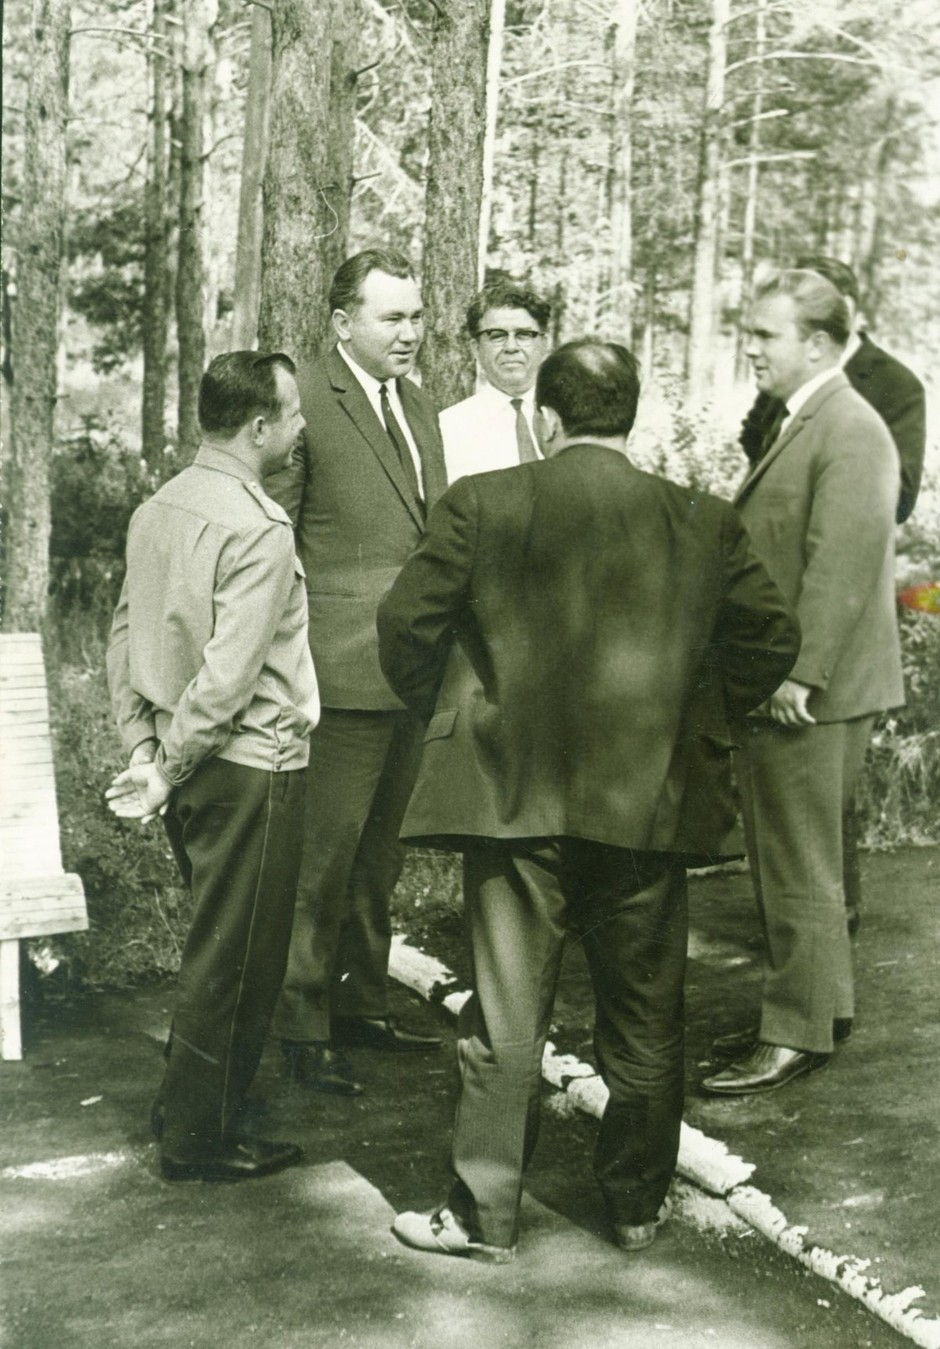 Pilot-cosmonaut Yuri Gagarin among members of the Tatar Oblast Committee of the Communist party in the youth camp Volga in Borovoye Matyushino settlement. August, 1967